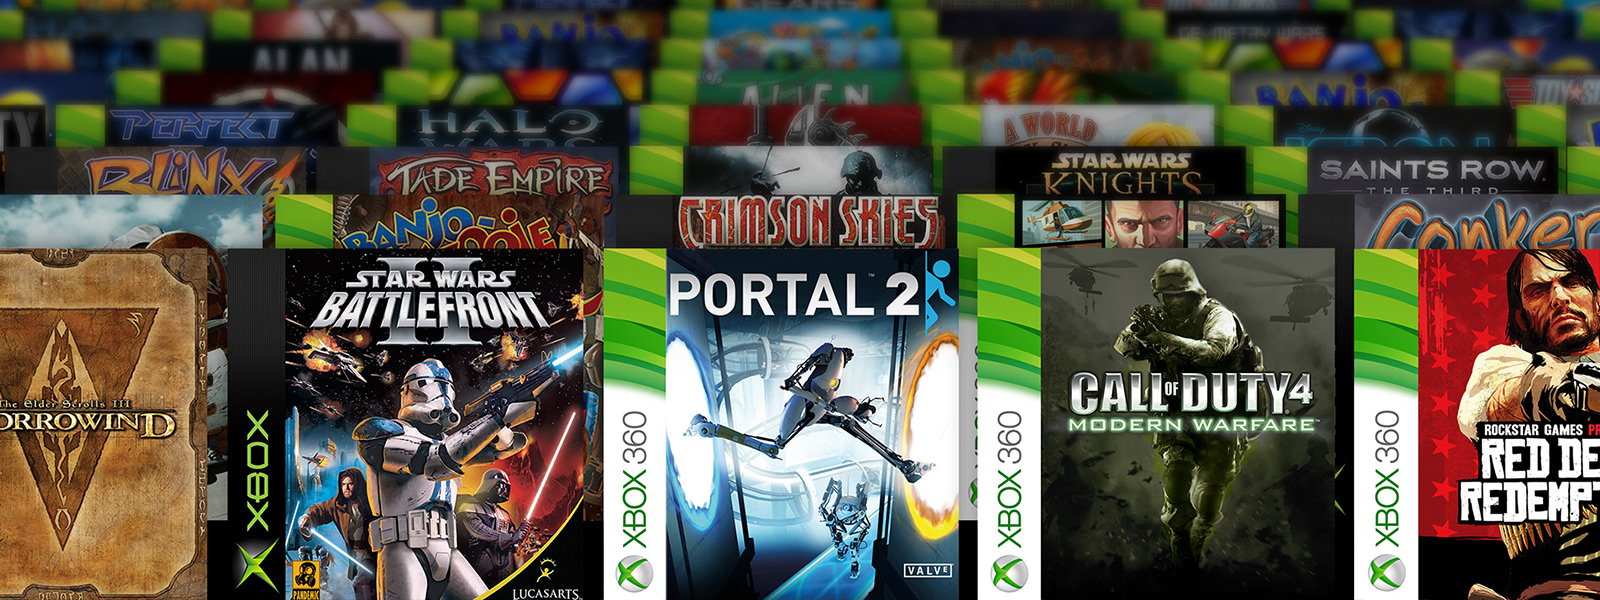 College of Xbox Back Compat games